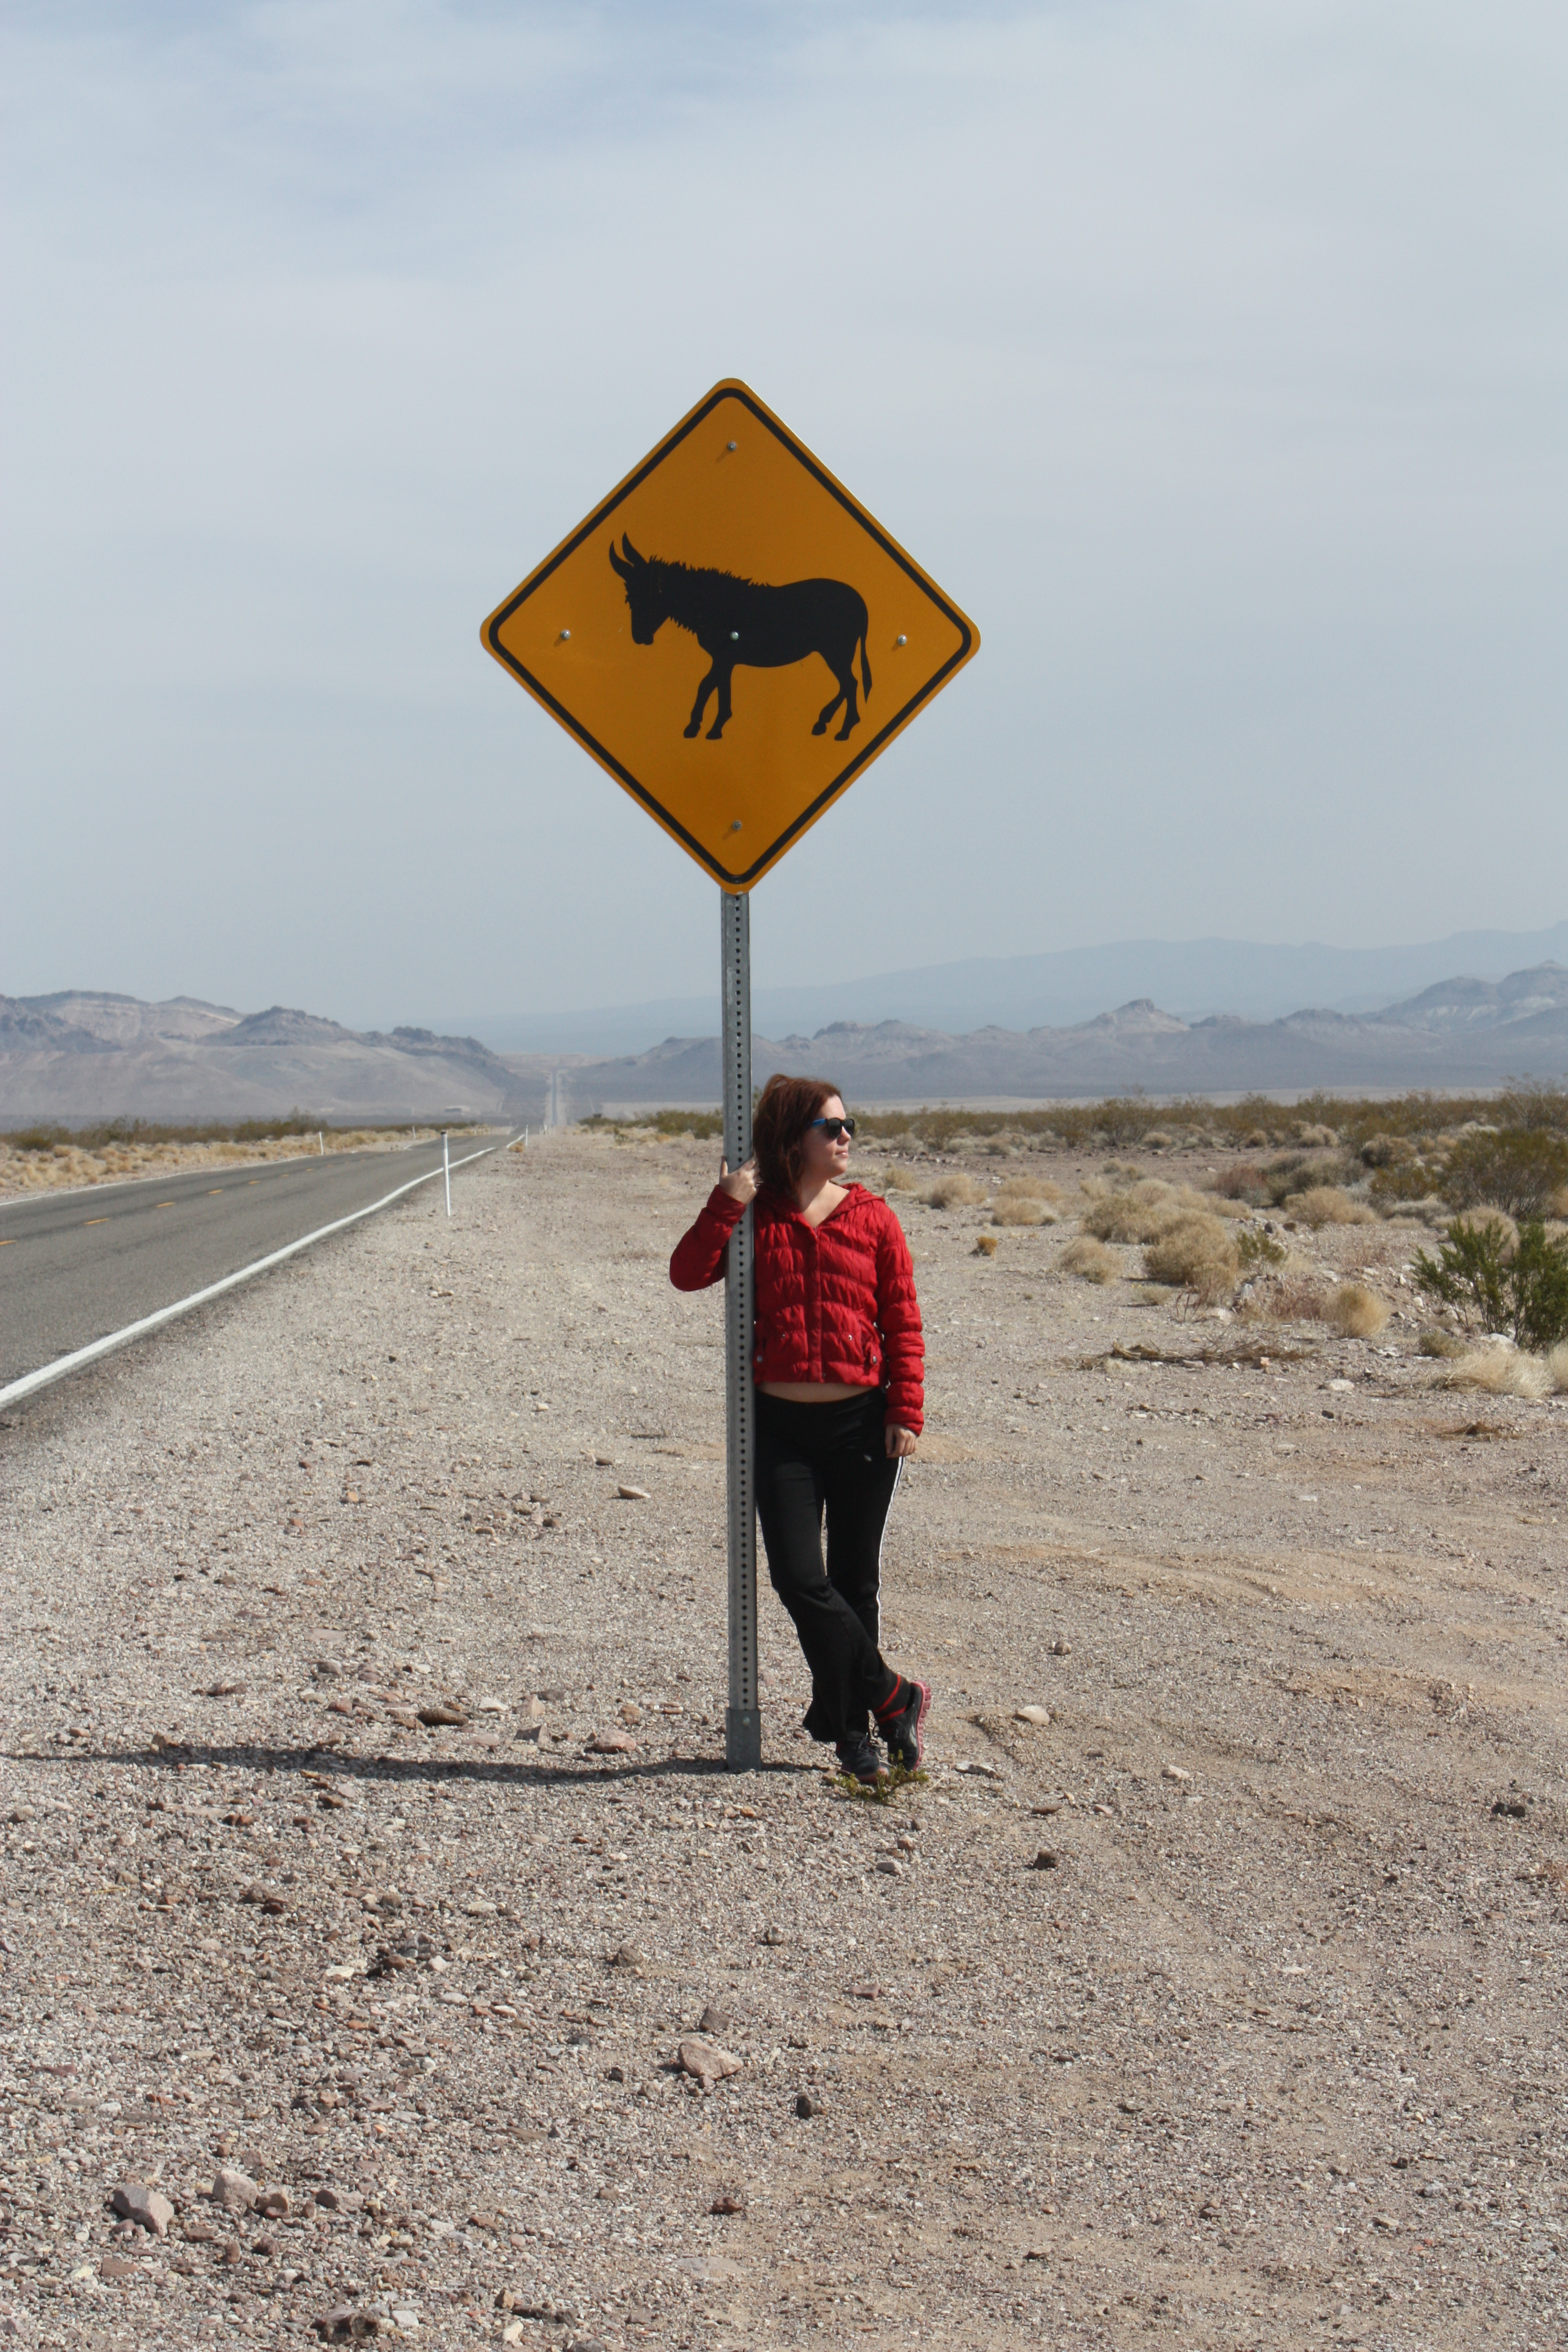 Me, standing next to the burro sign near Death Valley